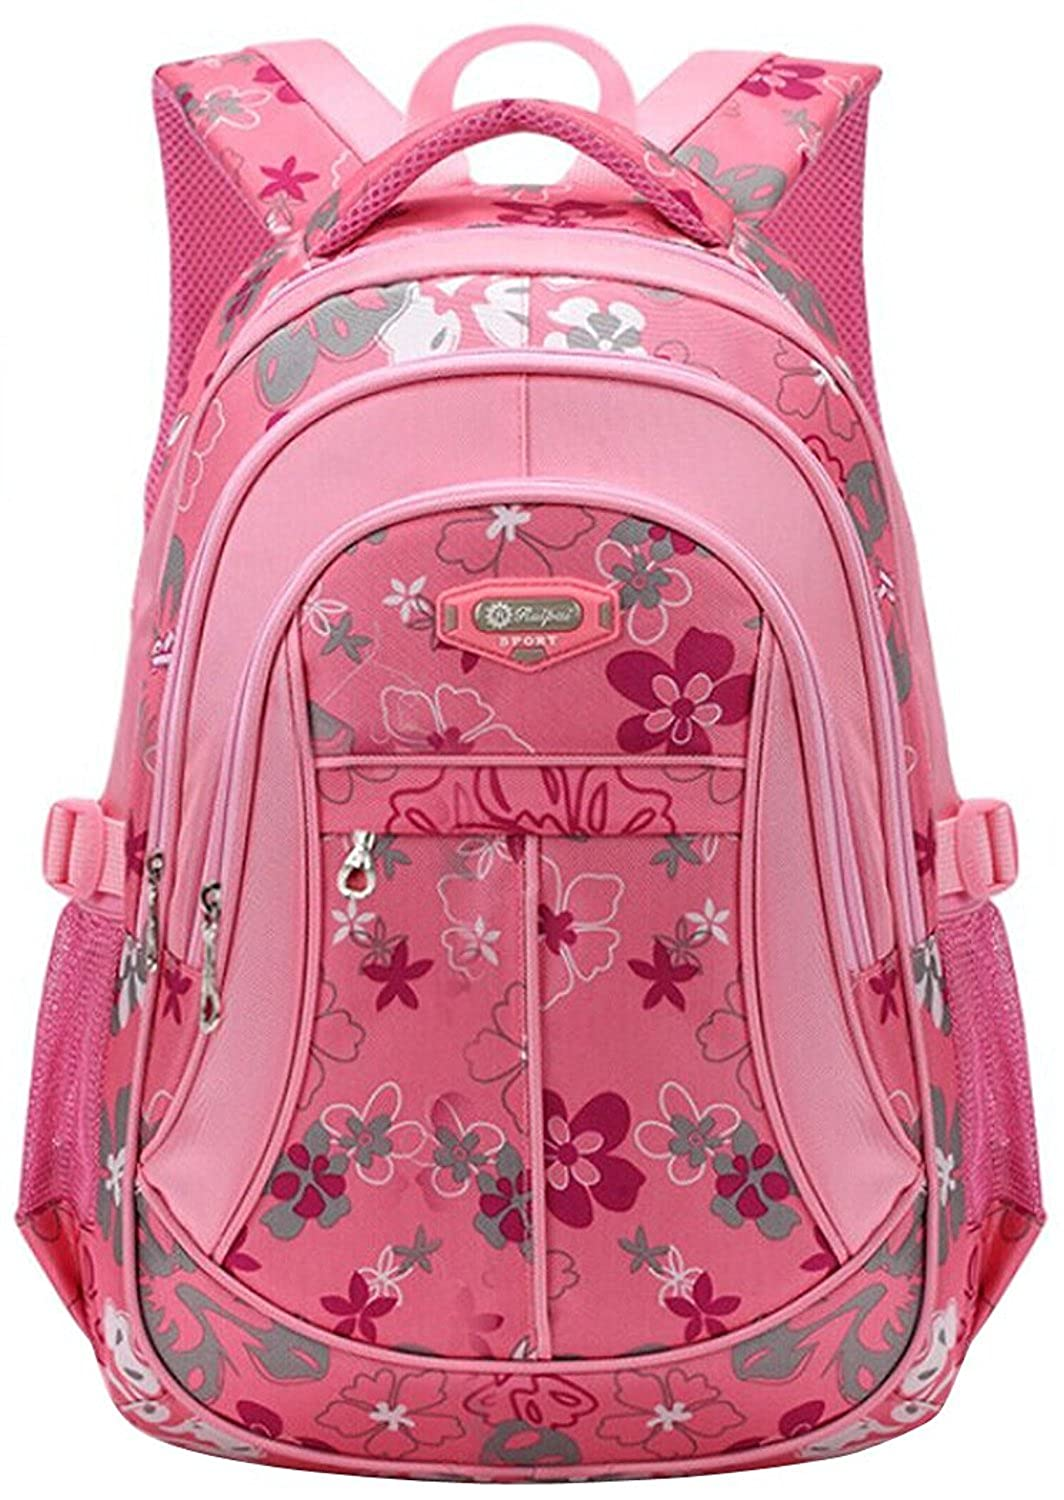 326c58a031 MAYZERO Waterproof School Bag Durable Travel Camping Backpack for Boys and  Girls